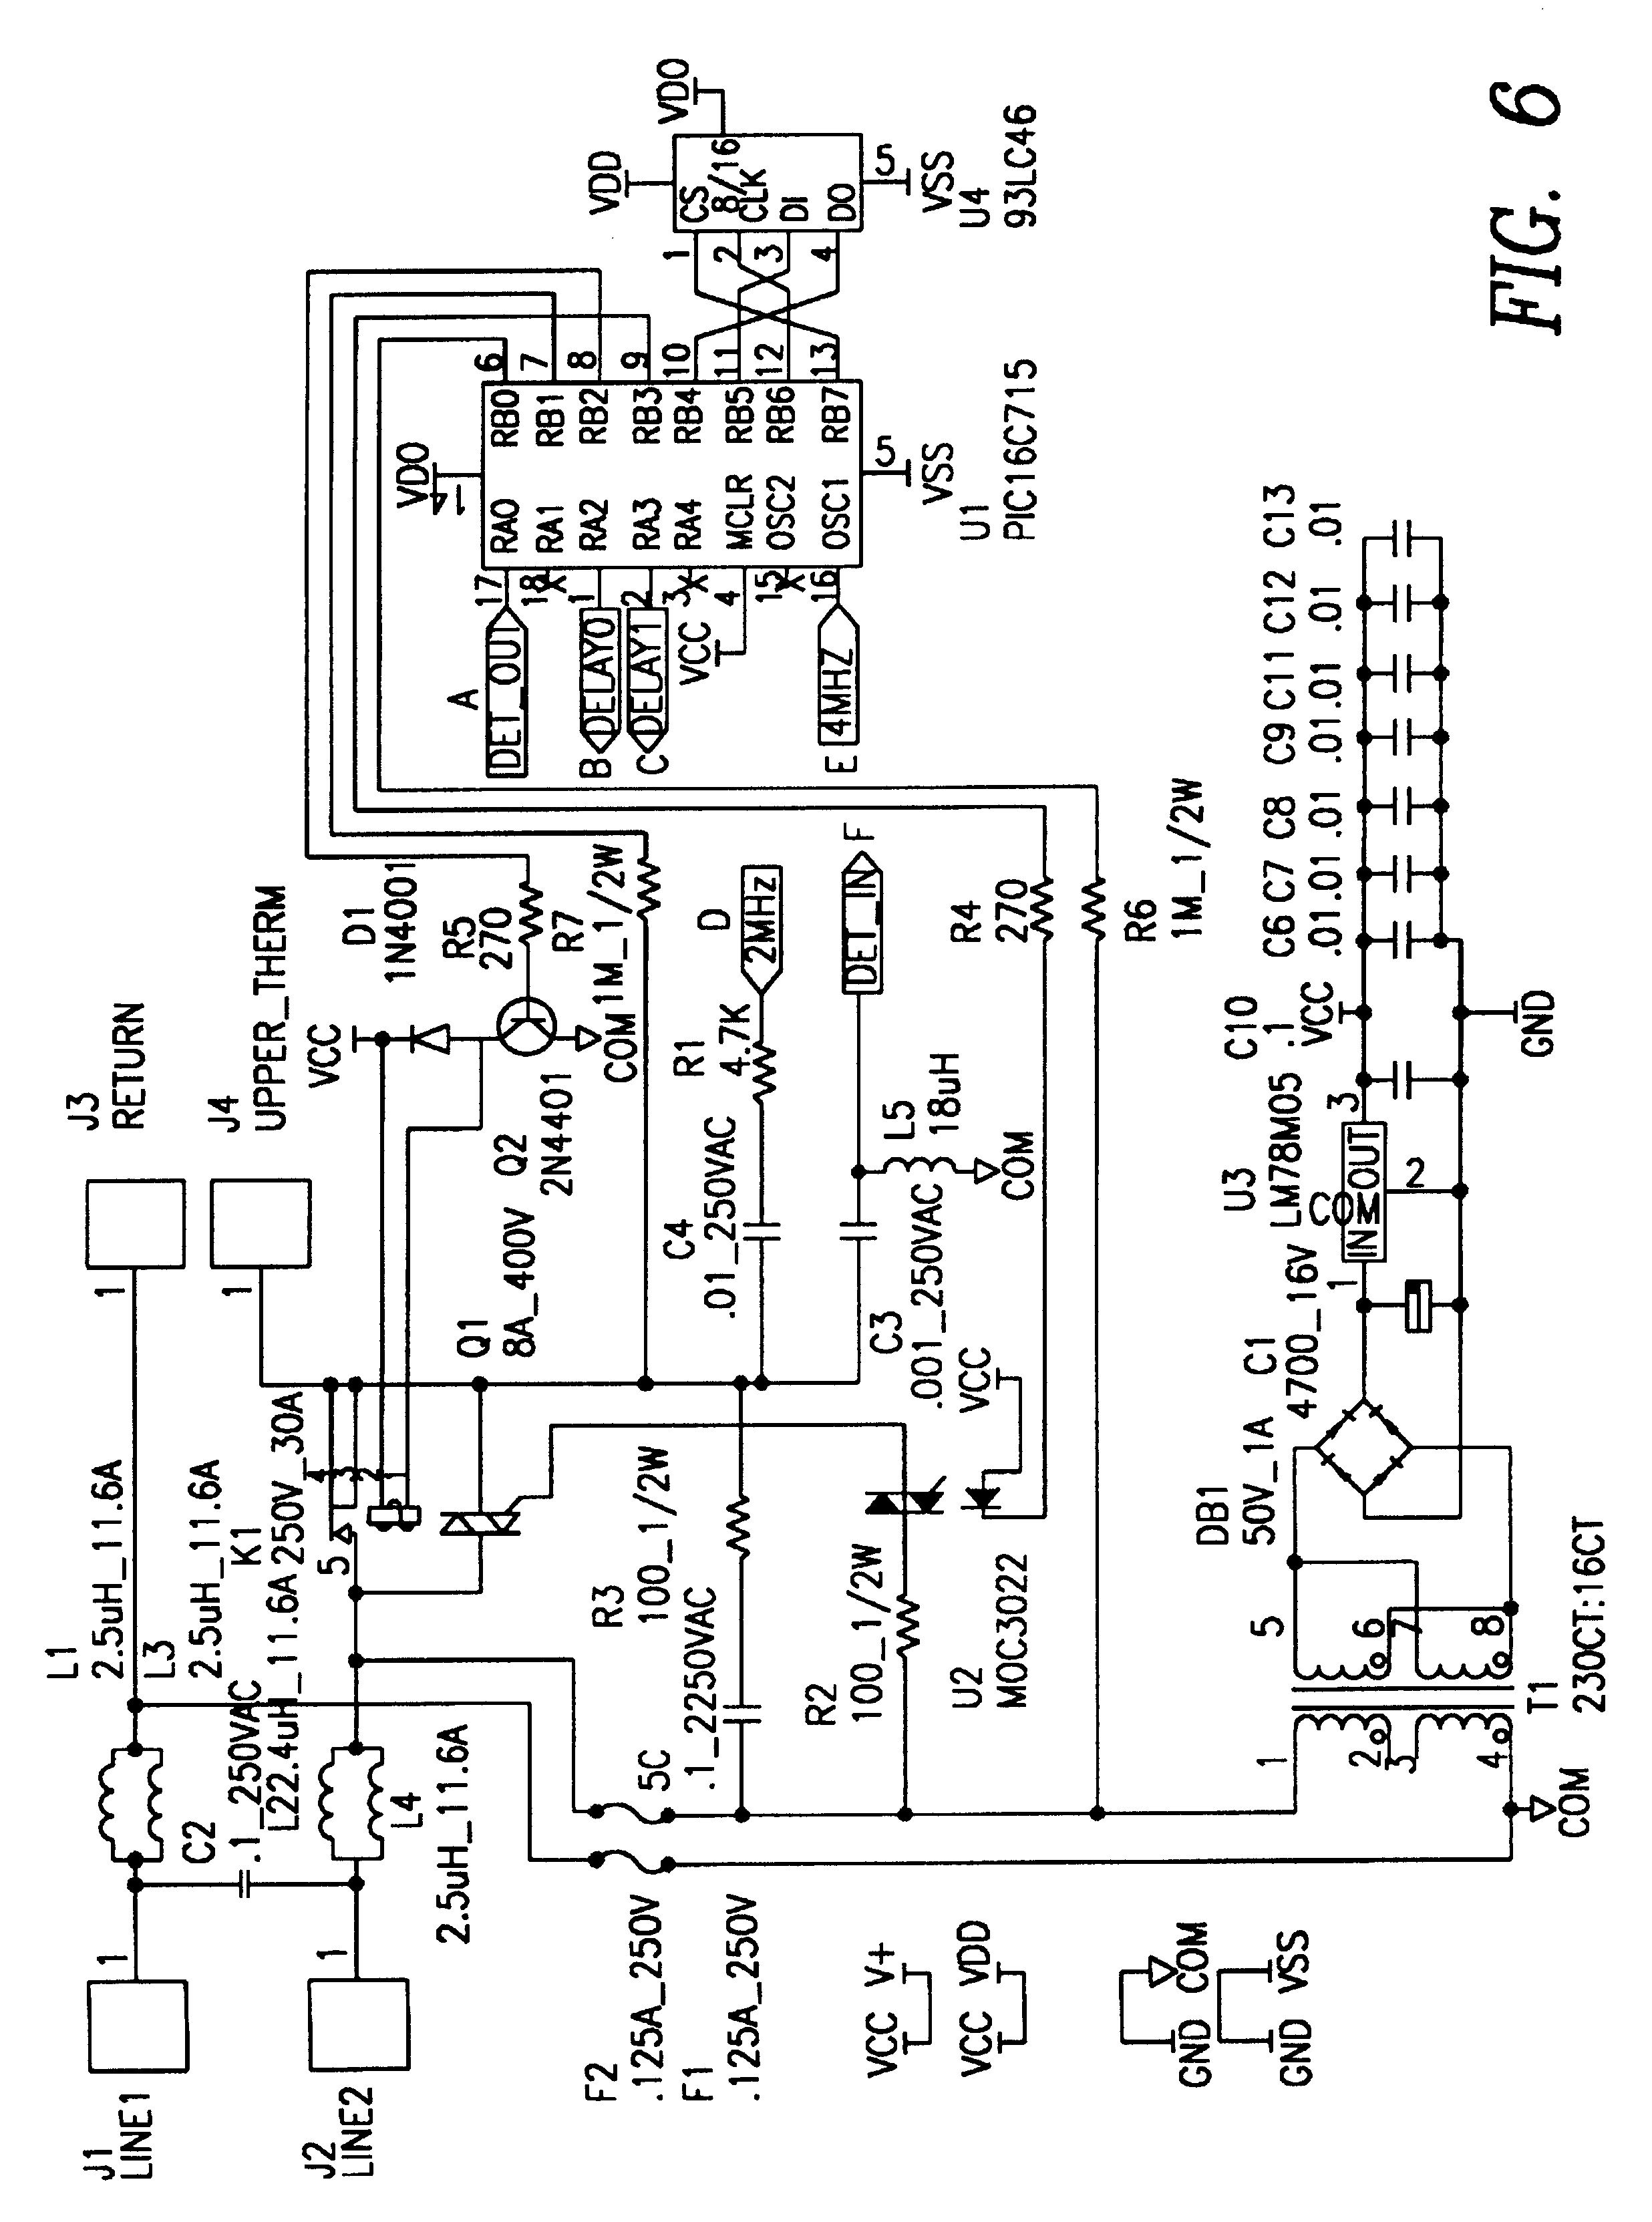 hatco wiring diagram Download-hatco booster heater wiring diagram collection electrical wiring rh metroroomph Hatco Booster Heater Manual hatco 19-r